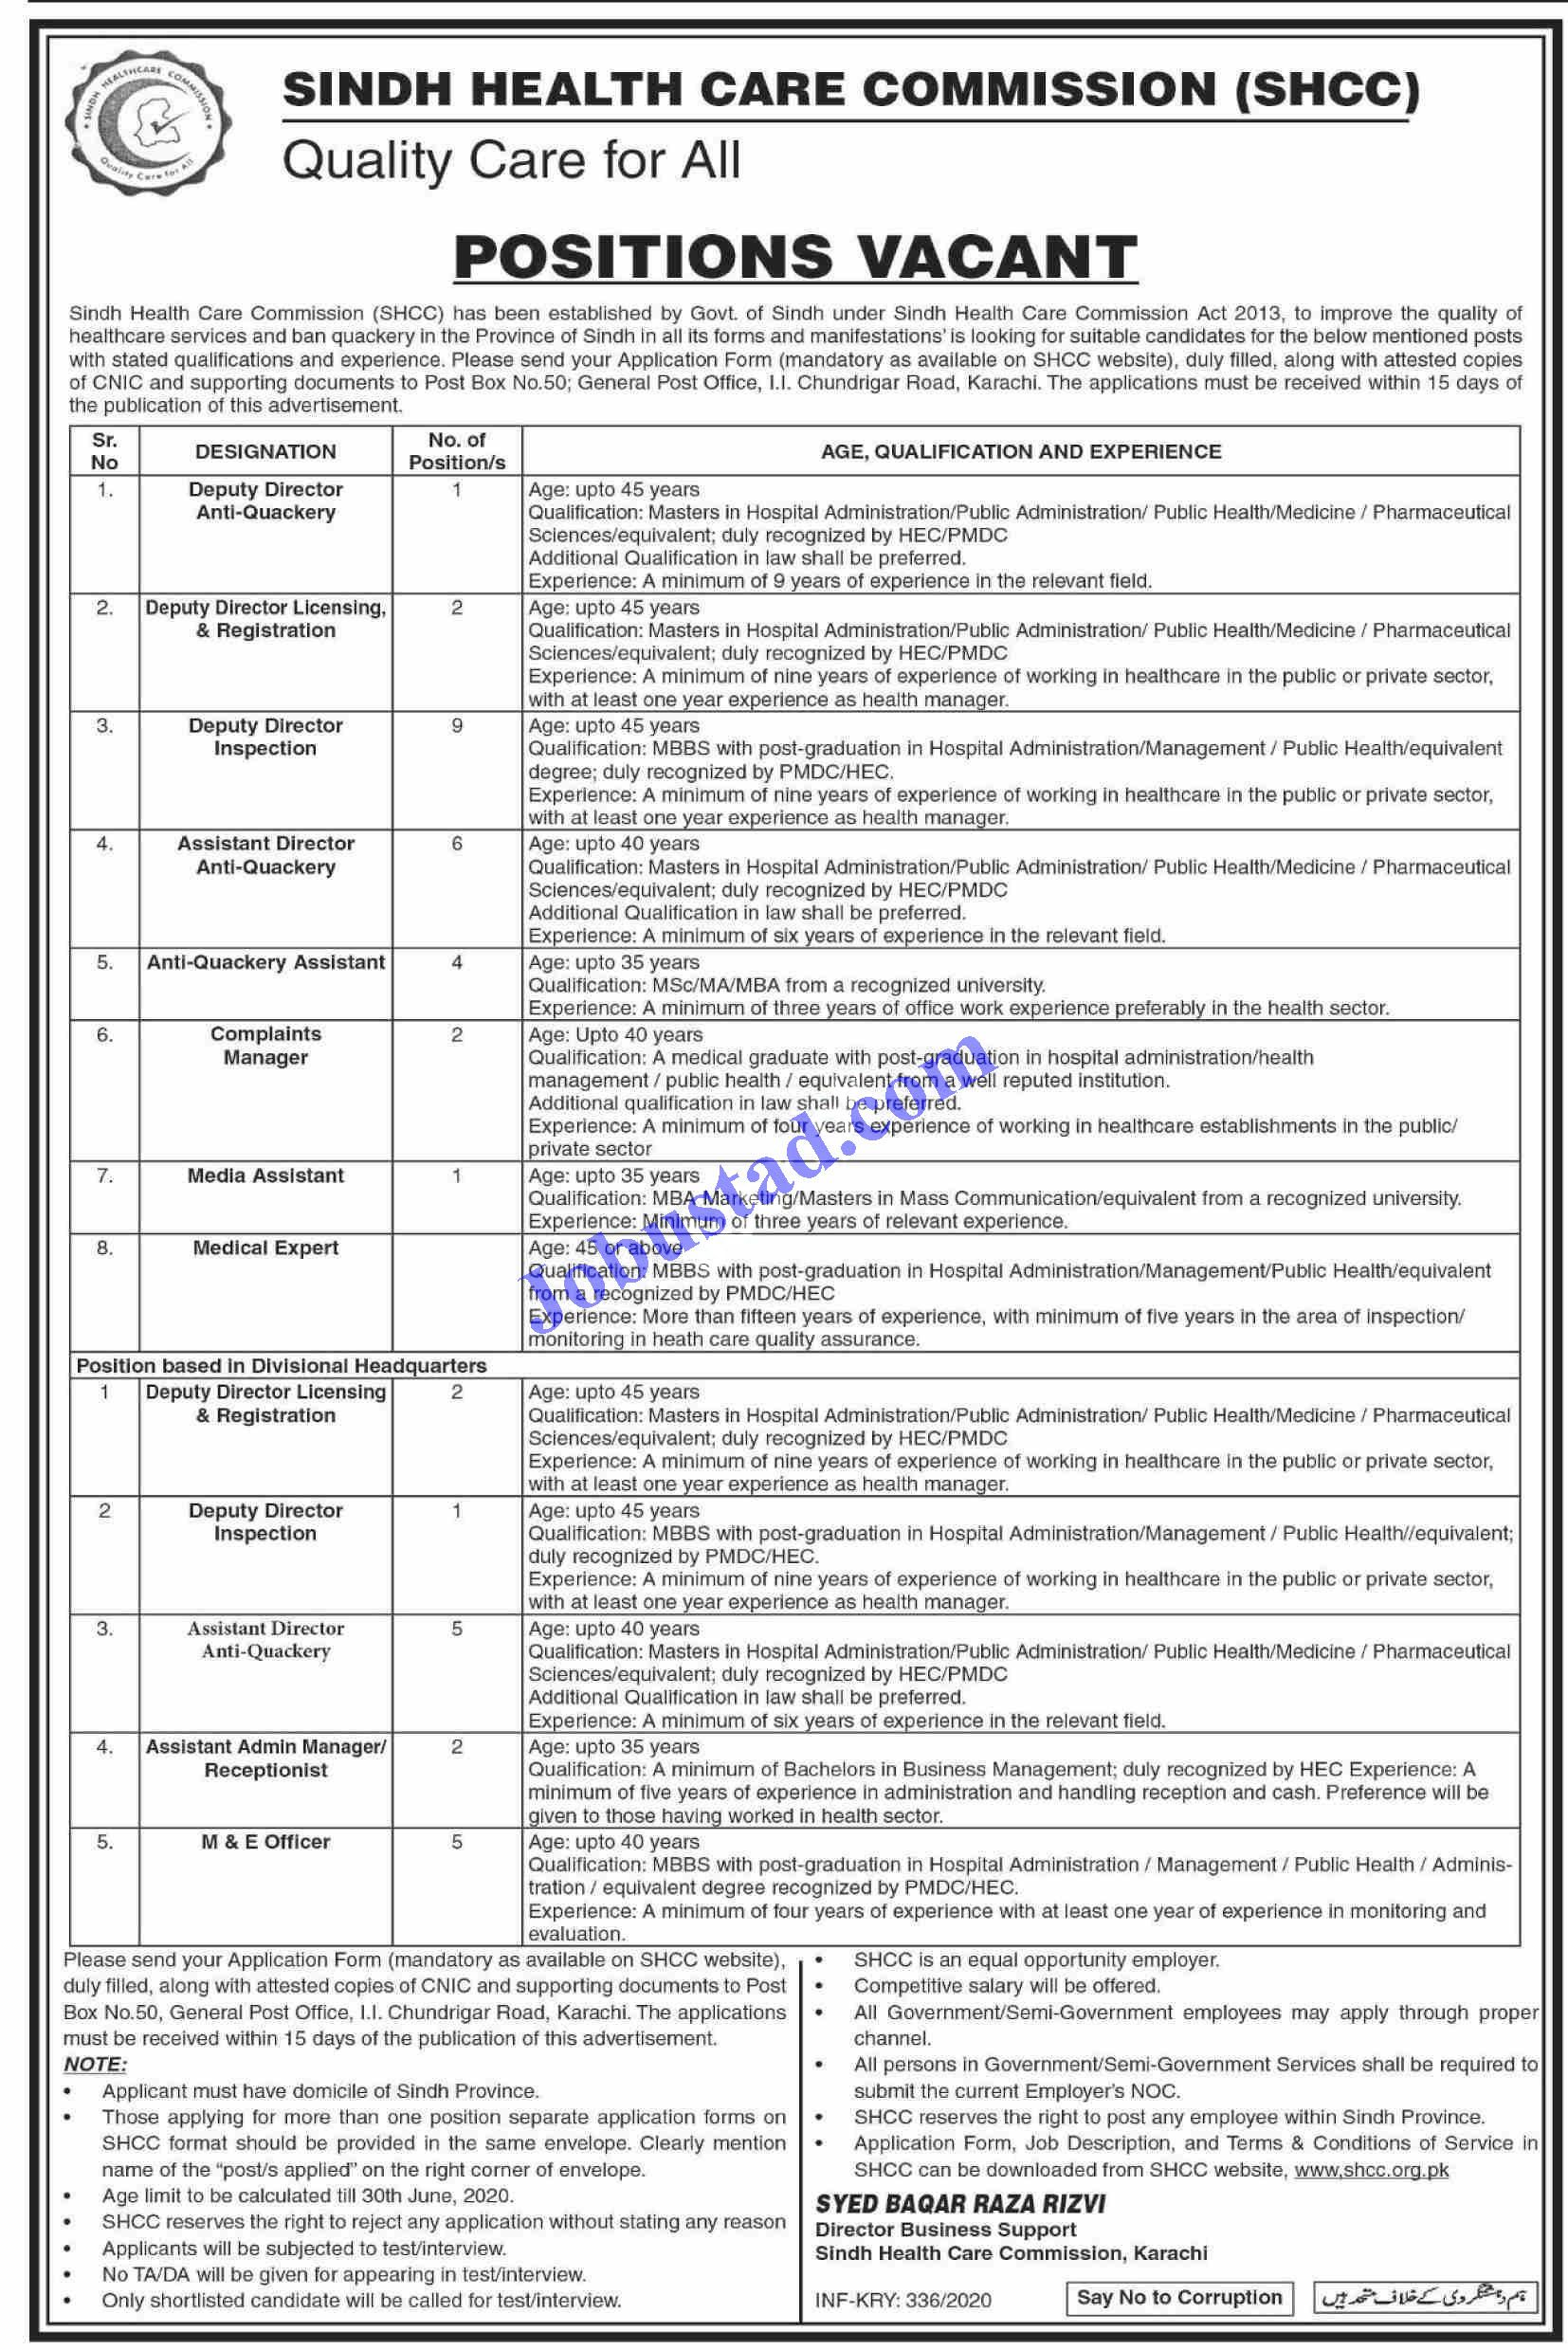 Sindh Health Care Commission SHCC has announced the Jobs